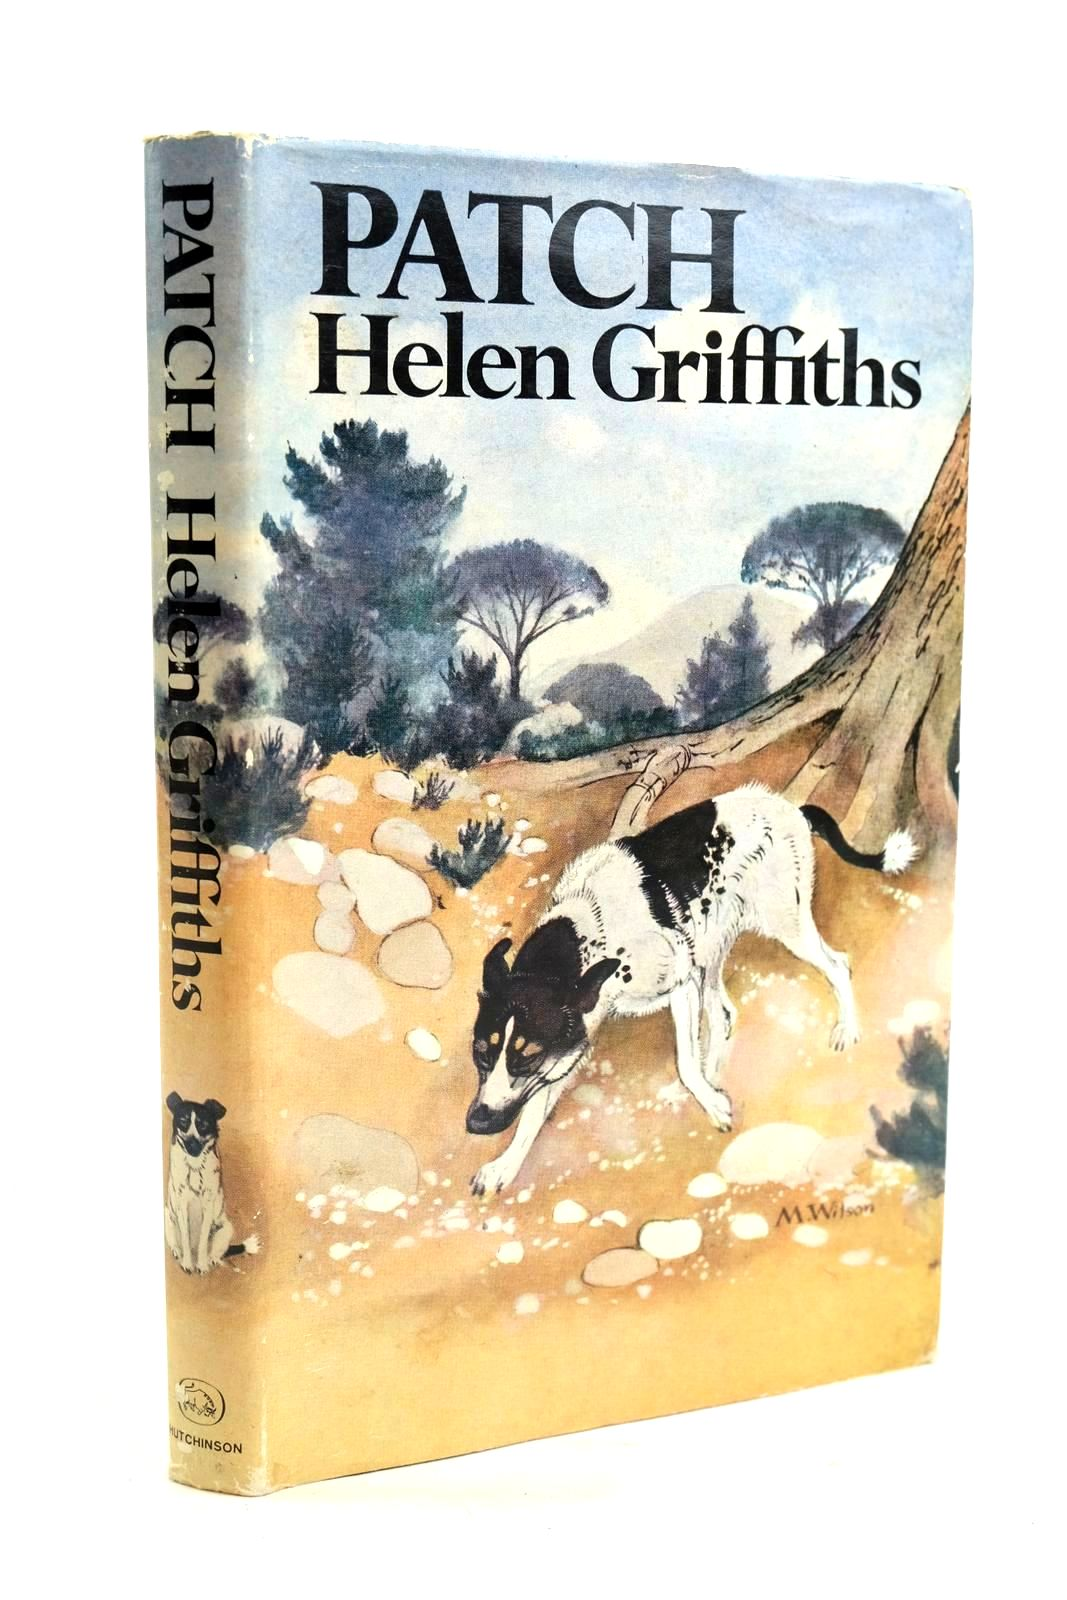 Photo of PATCH written by Griffiths, Helen illustrated by Wilson, Maurice published by Hutchinson of London (STOCK CODE: 1319691)  for sale by Stella & Rose's Books